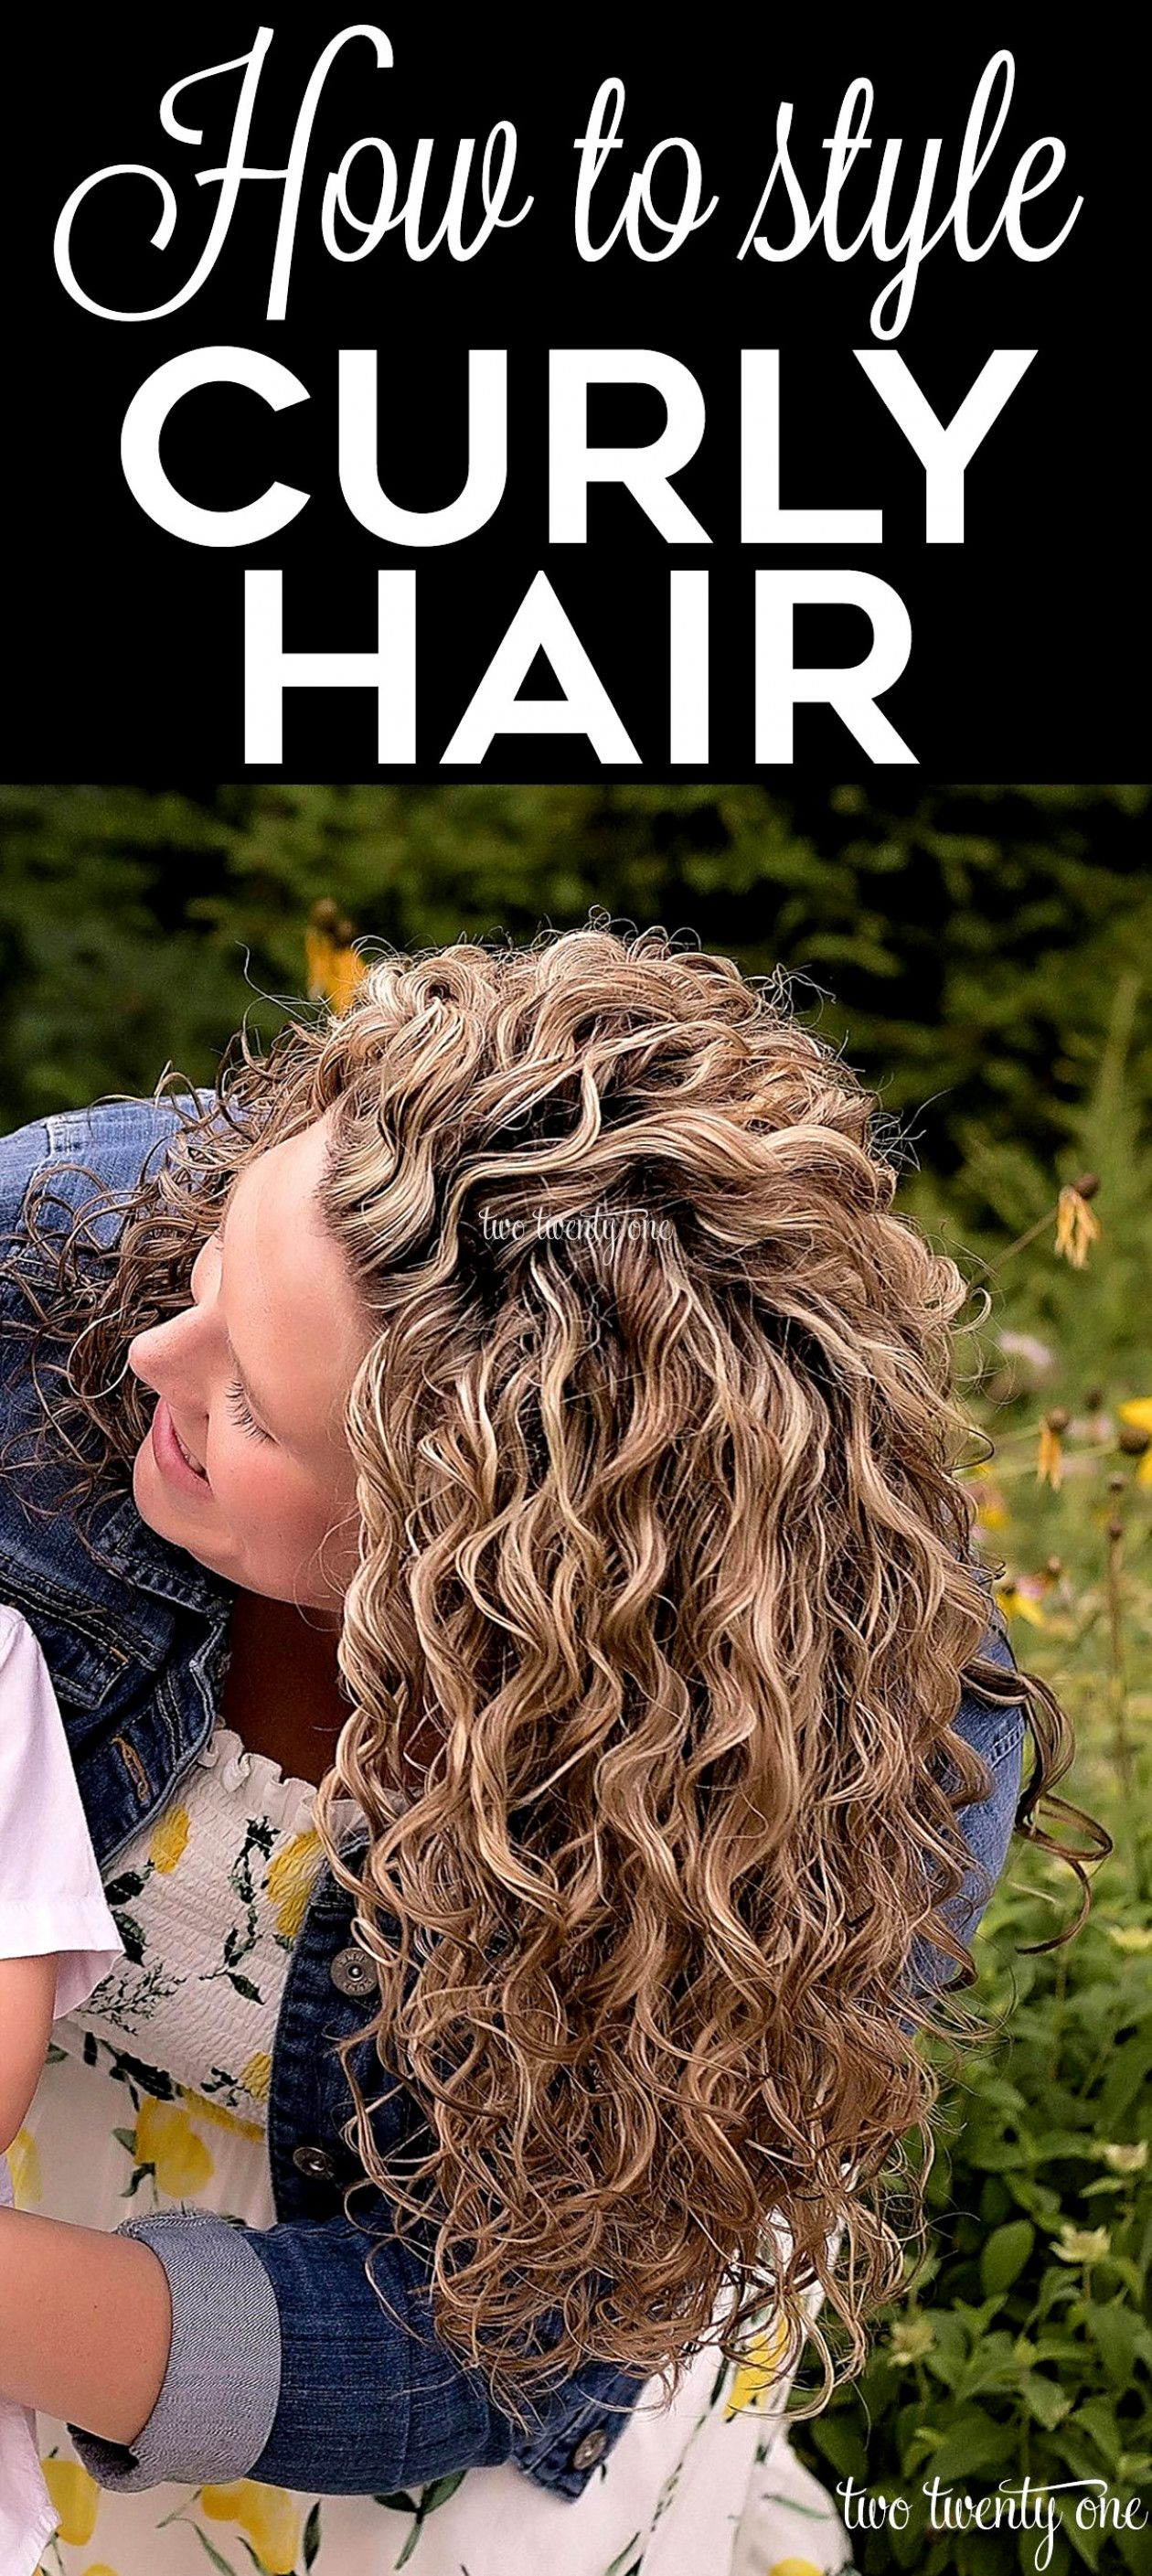 How to style curly hair! Step by step tutorial featuring